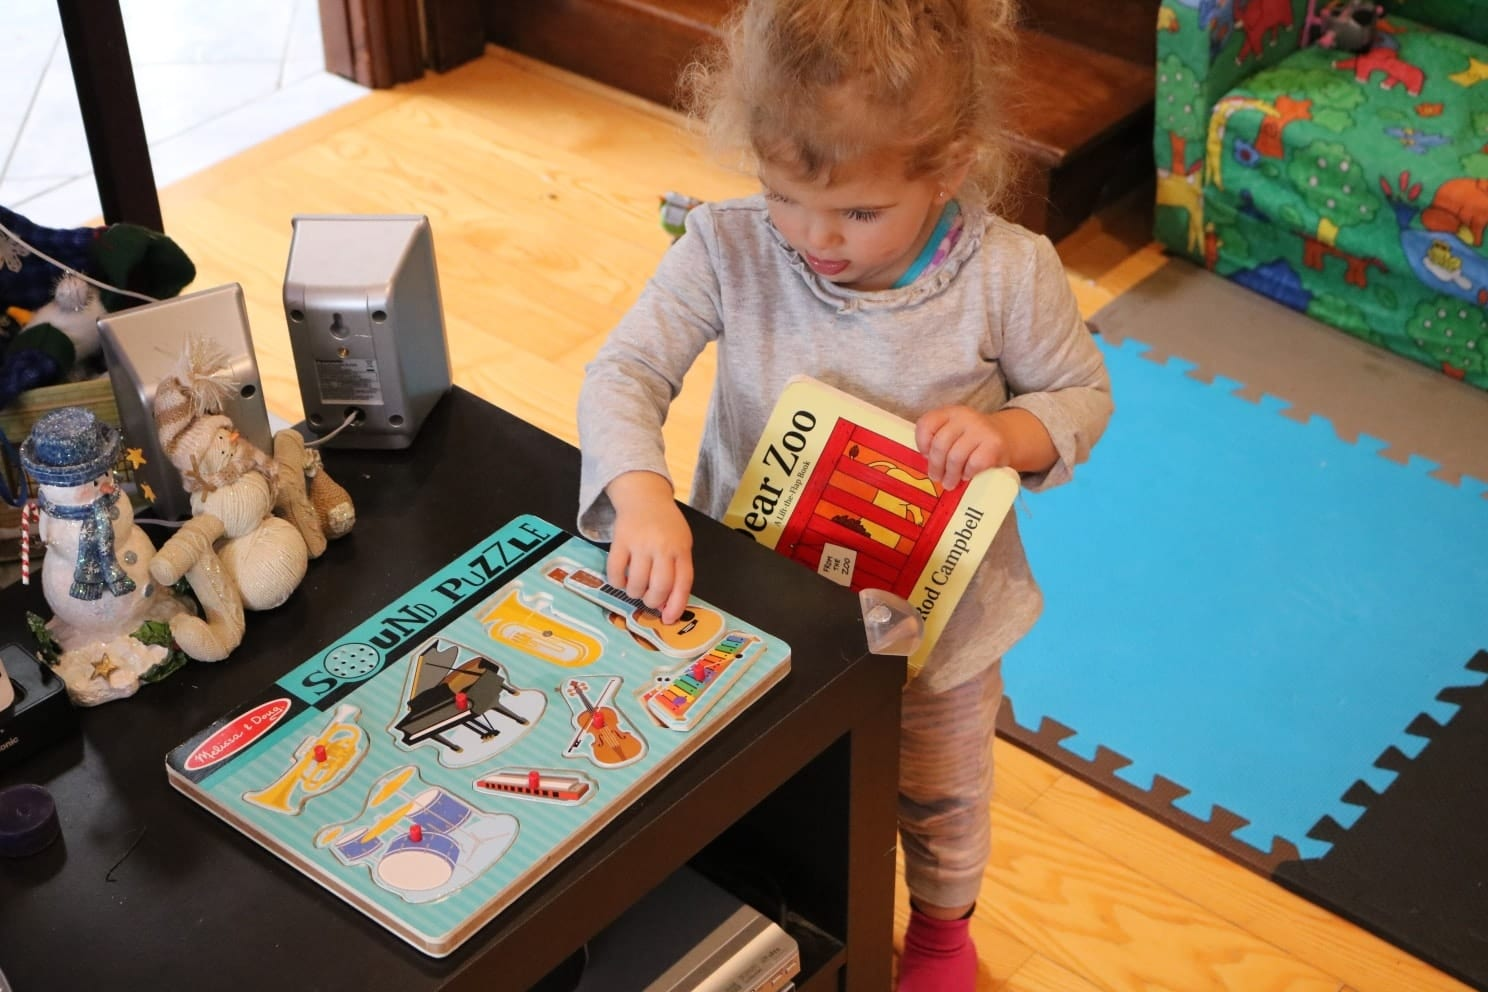 Toddler in a grey shirt playing with a noise puzzle while holding a book